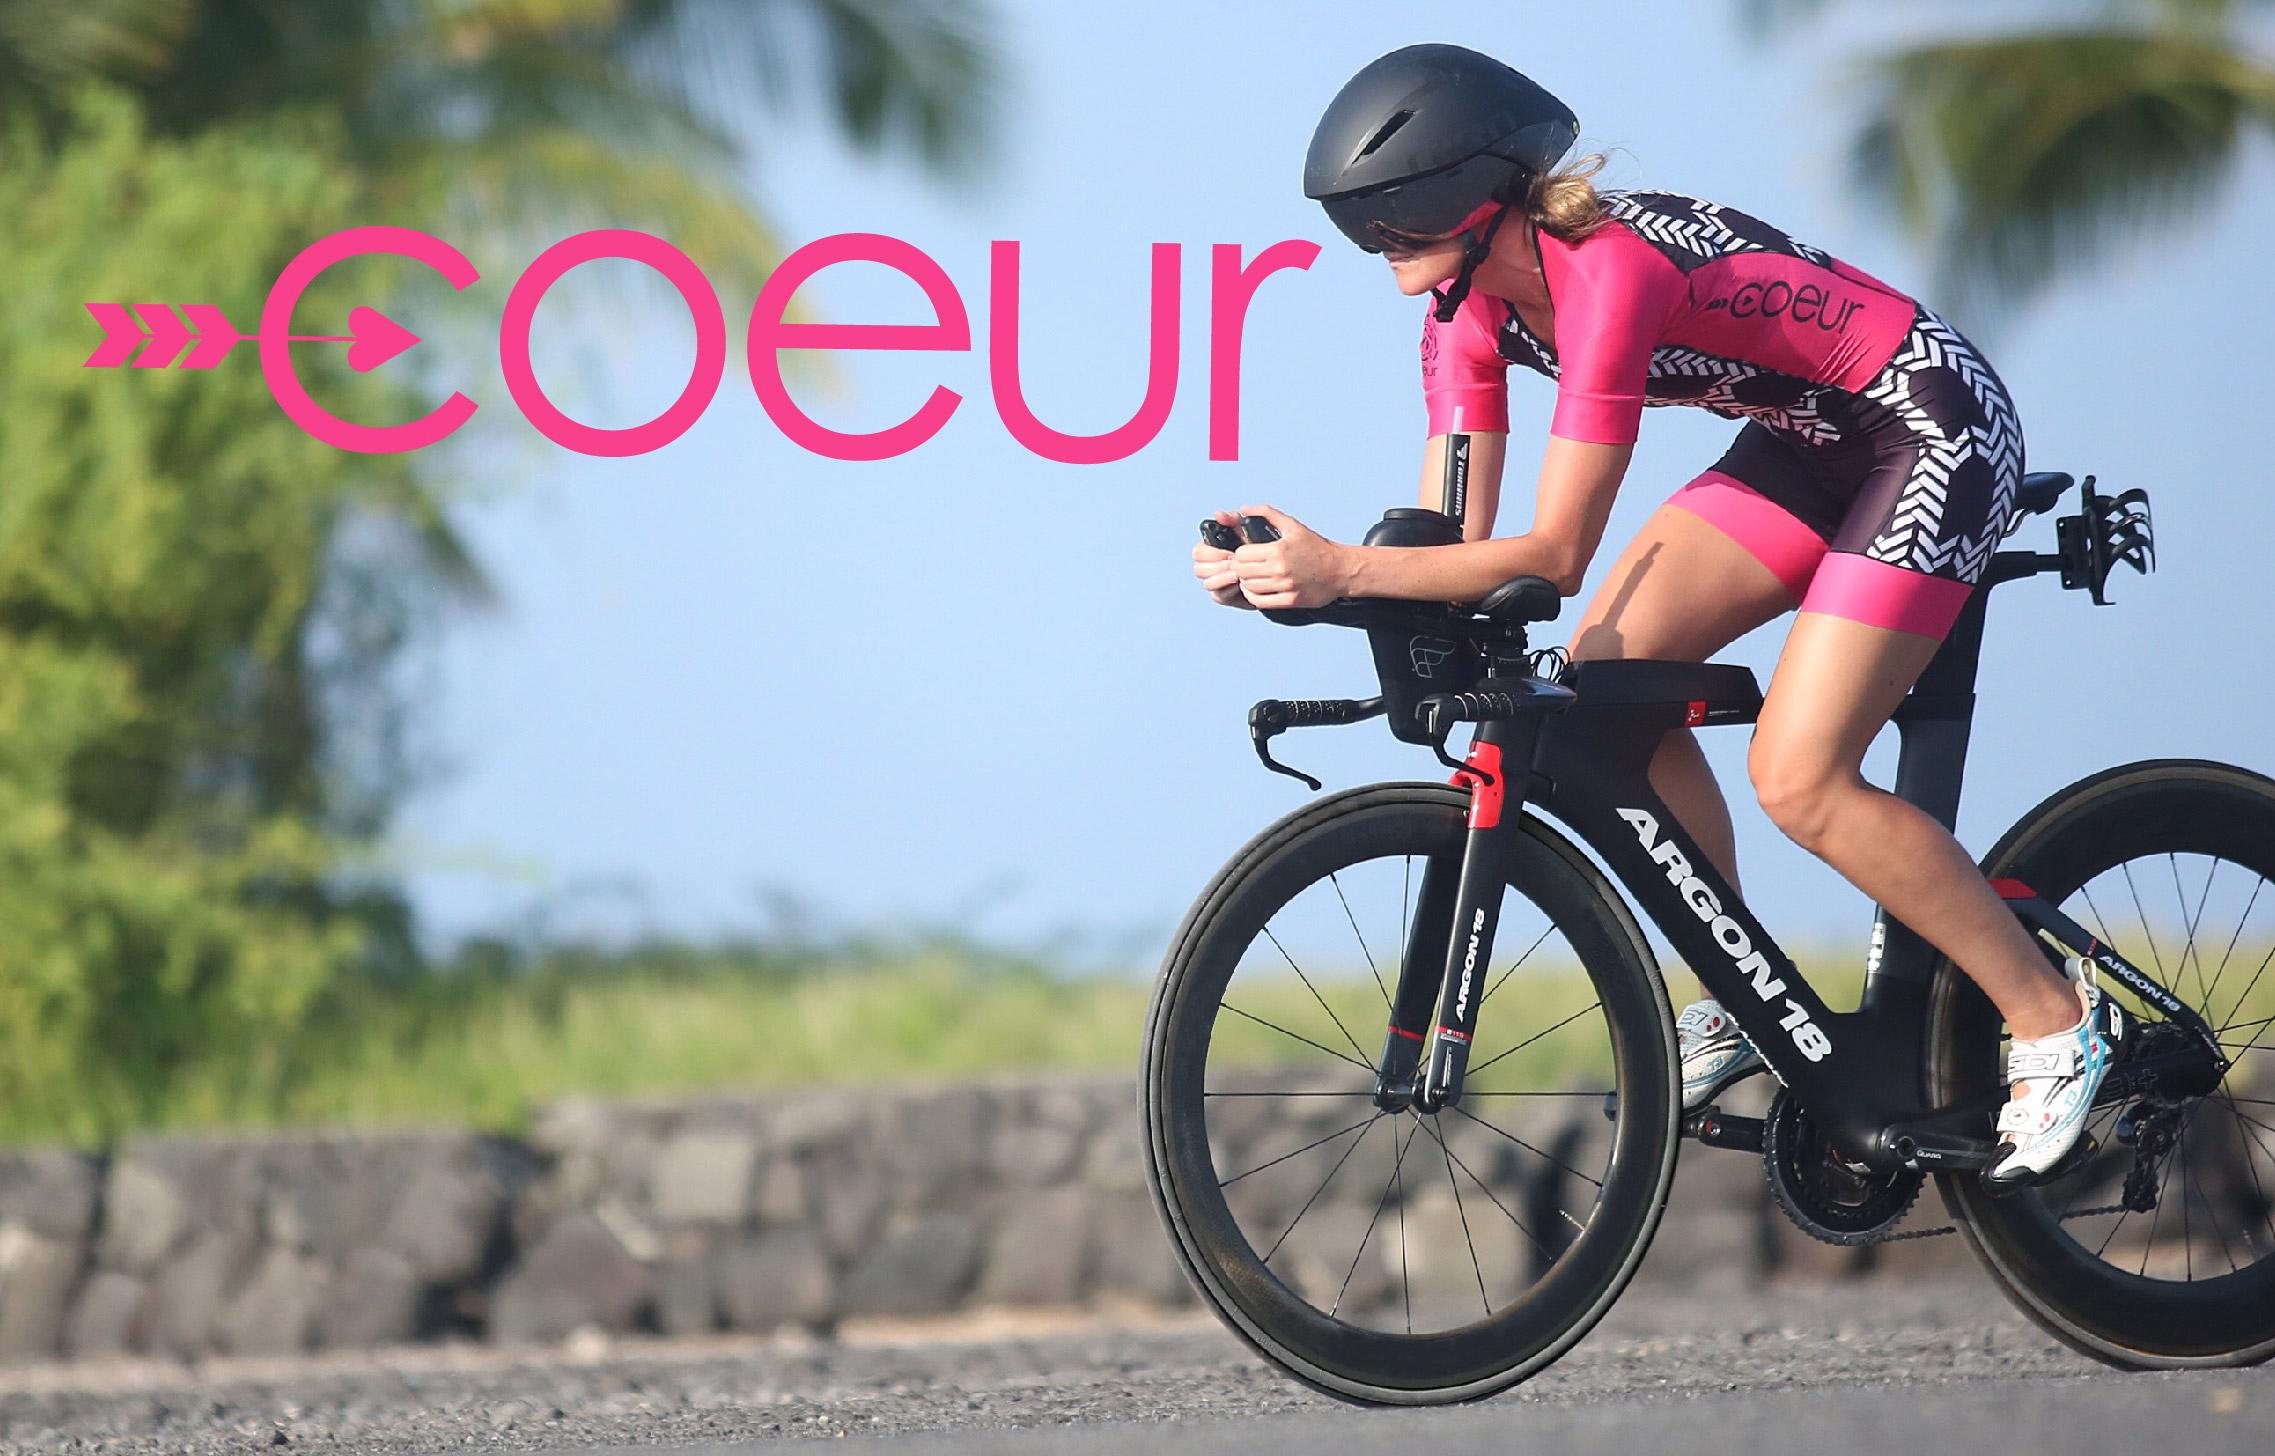 Pour with Coeur: Women's Evening of All Things Triathlon